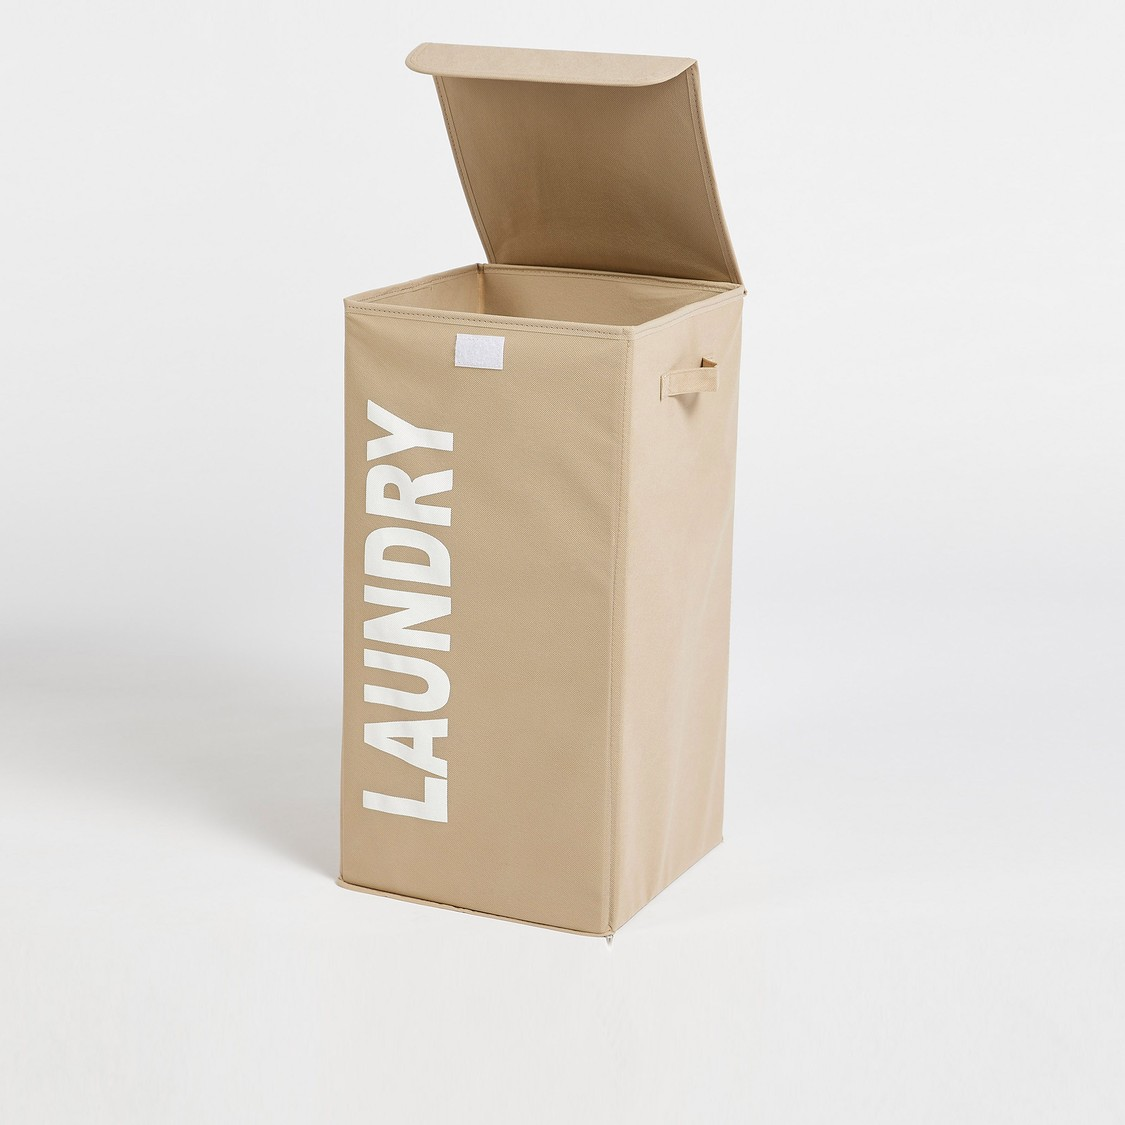 Printed Laundry Hamper with Top Lid and Zip Closure - 60x30 cms